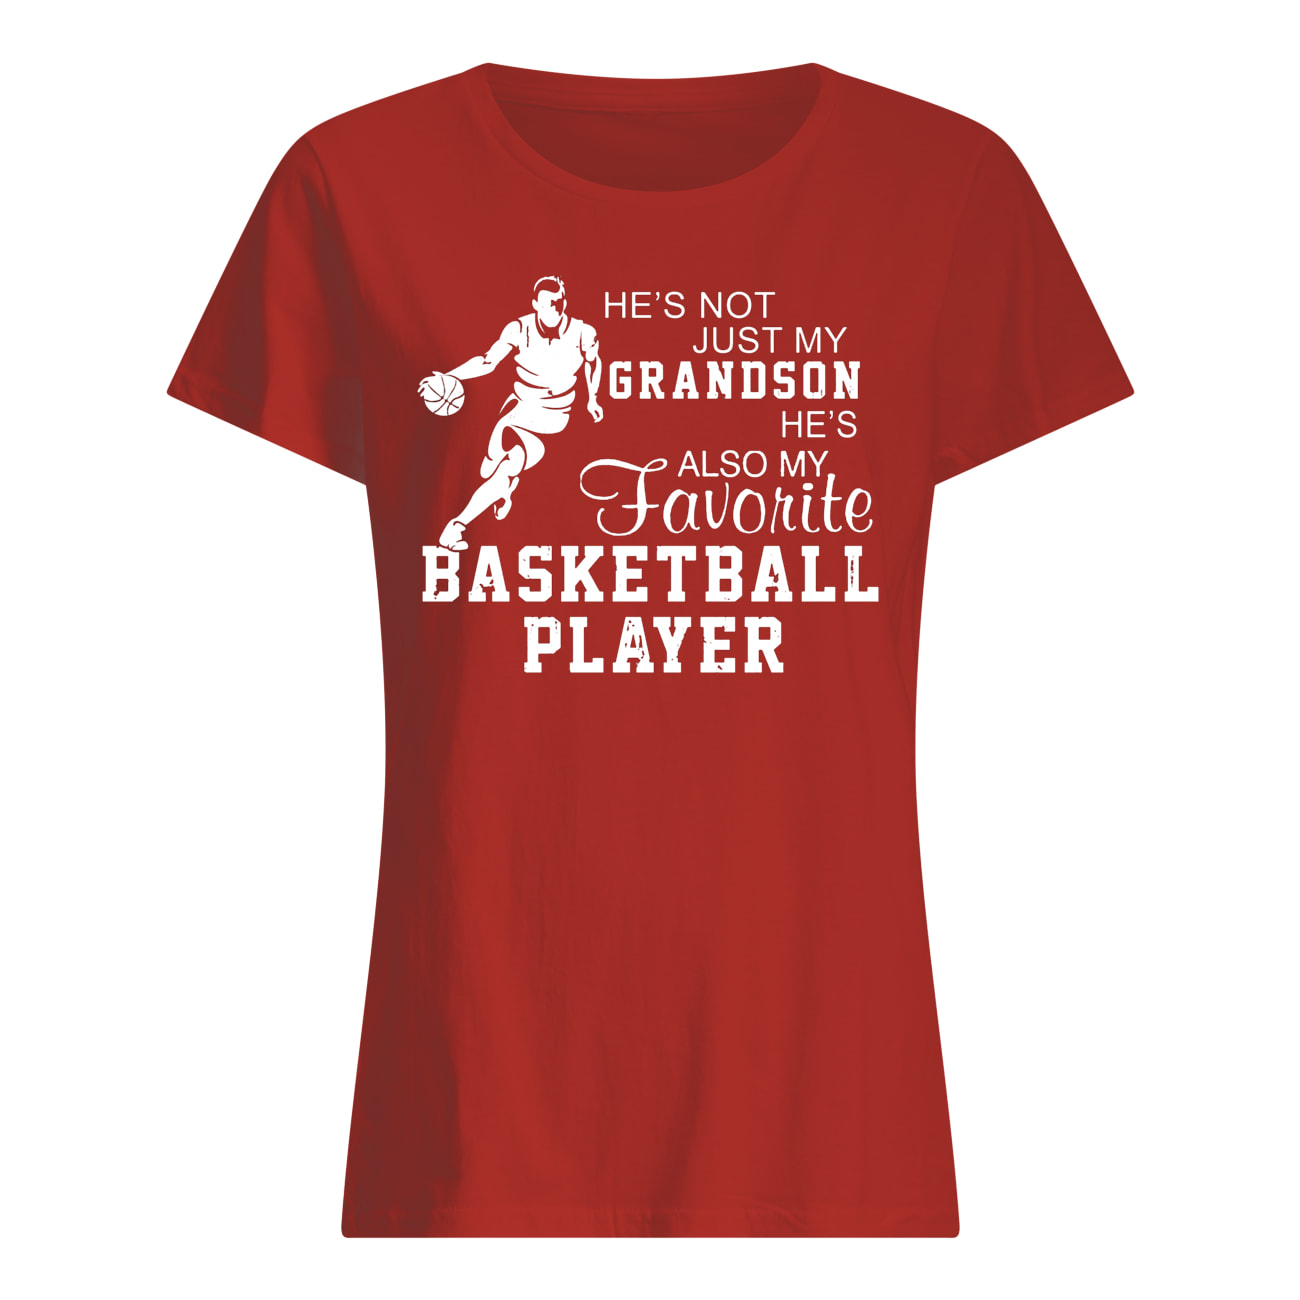 He's not just my grandson he's also my favorite basketball player womens shirt